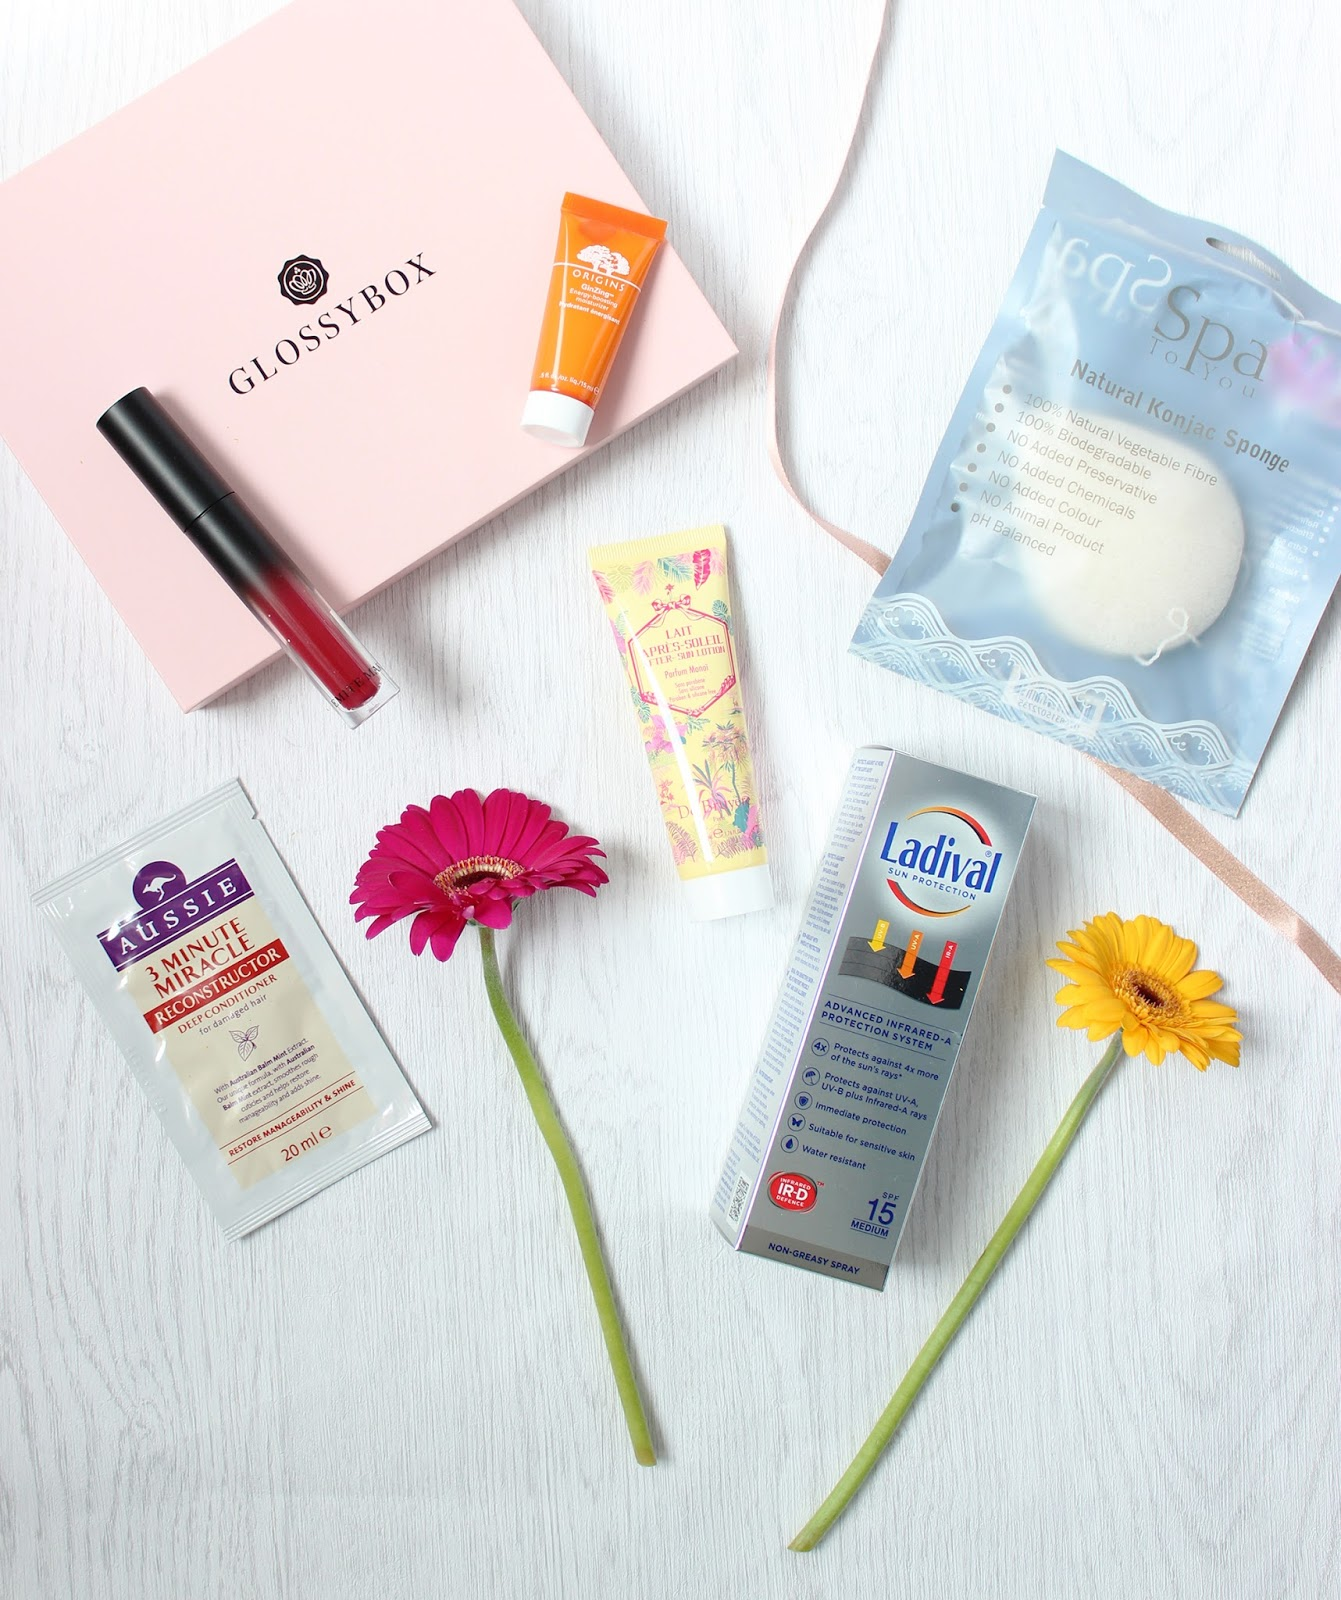 Glossybox UK June 2016 review and contents